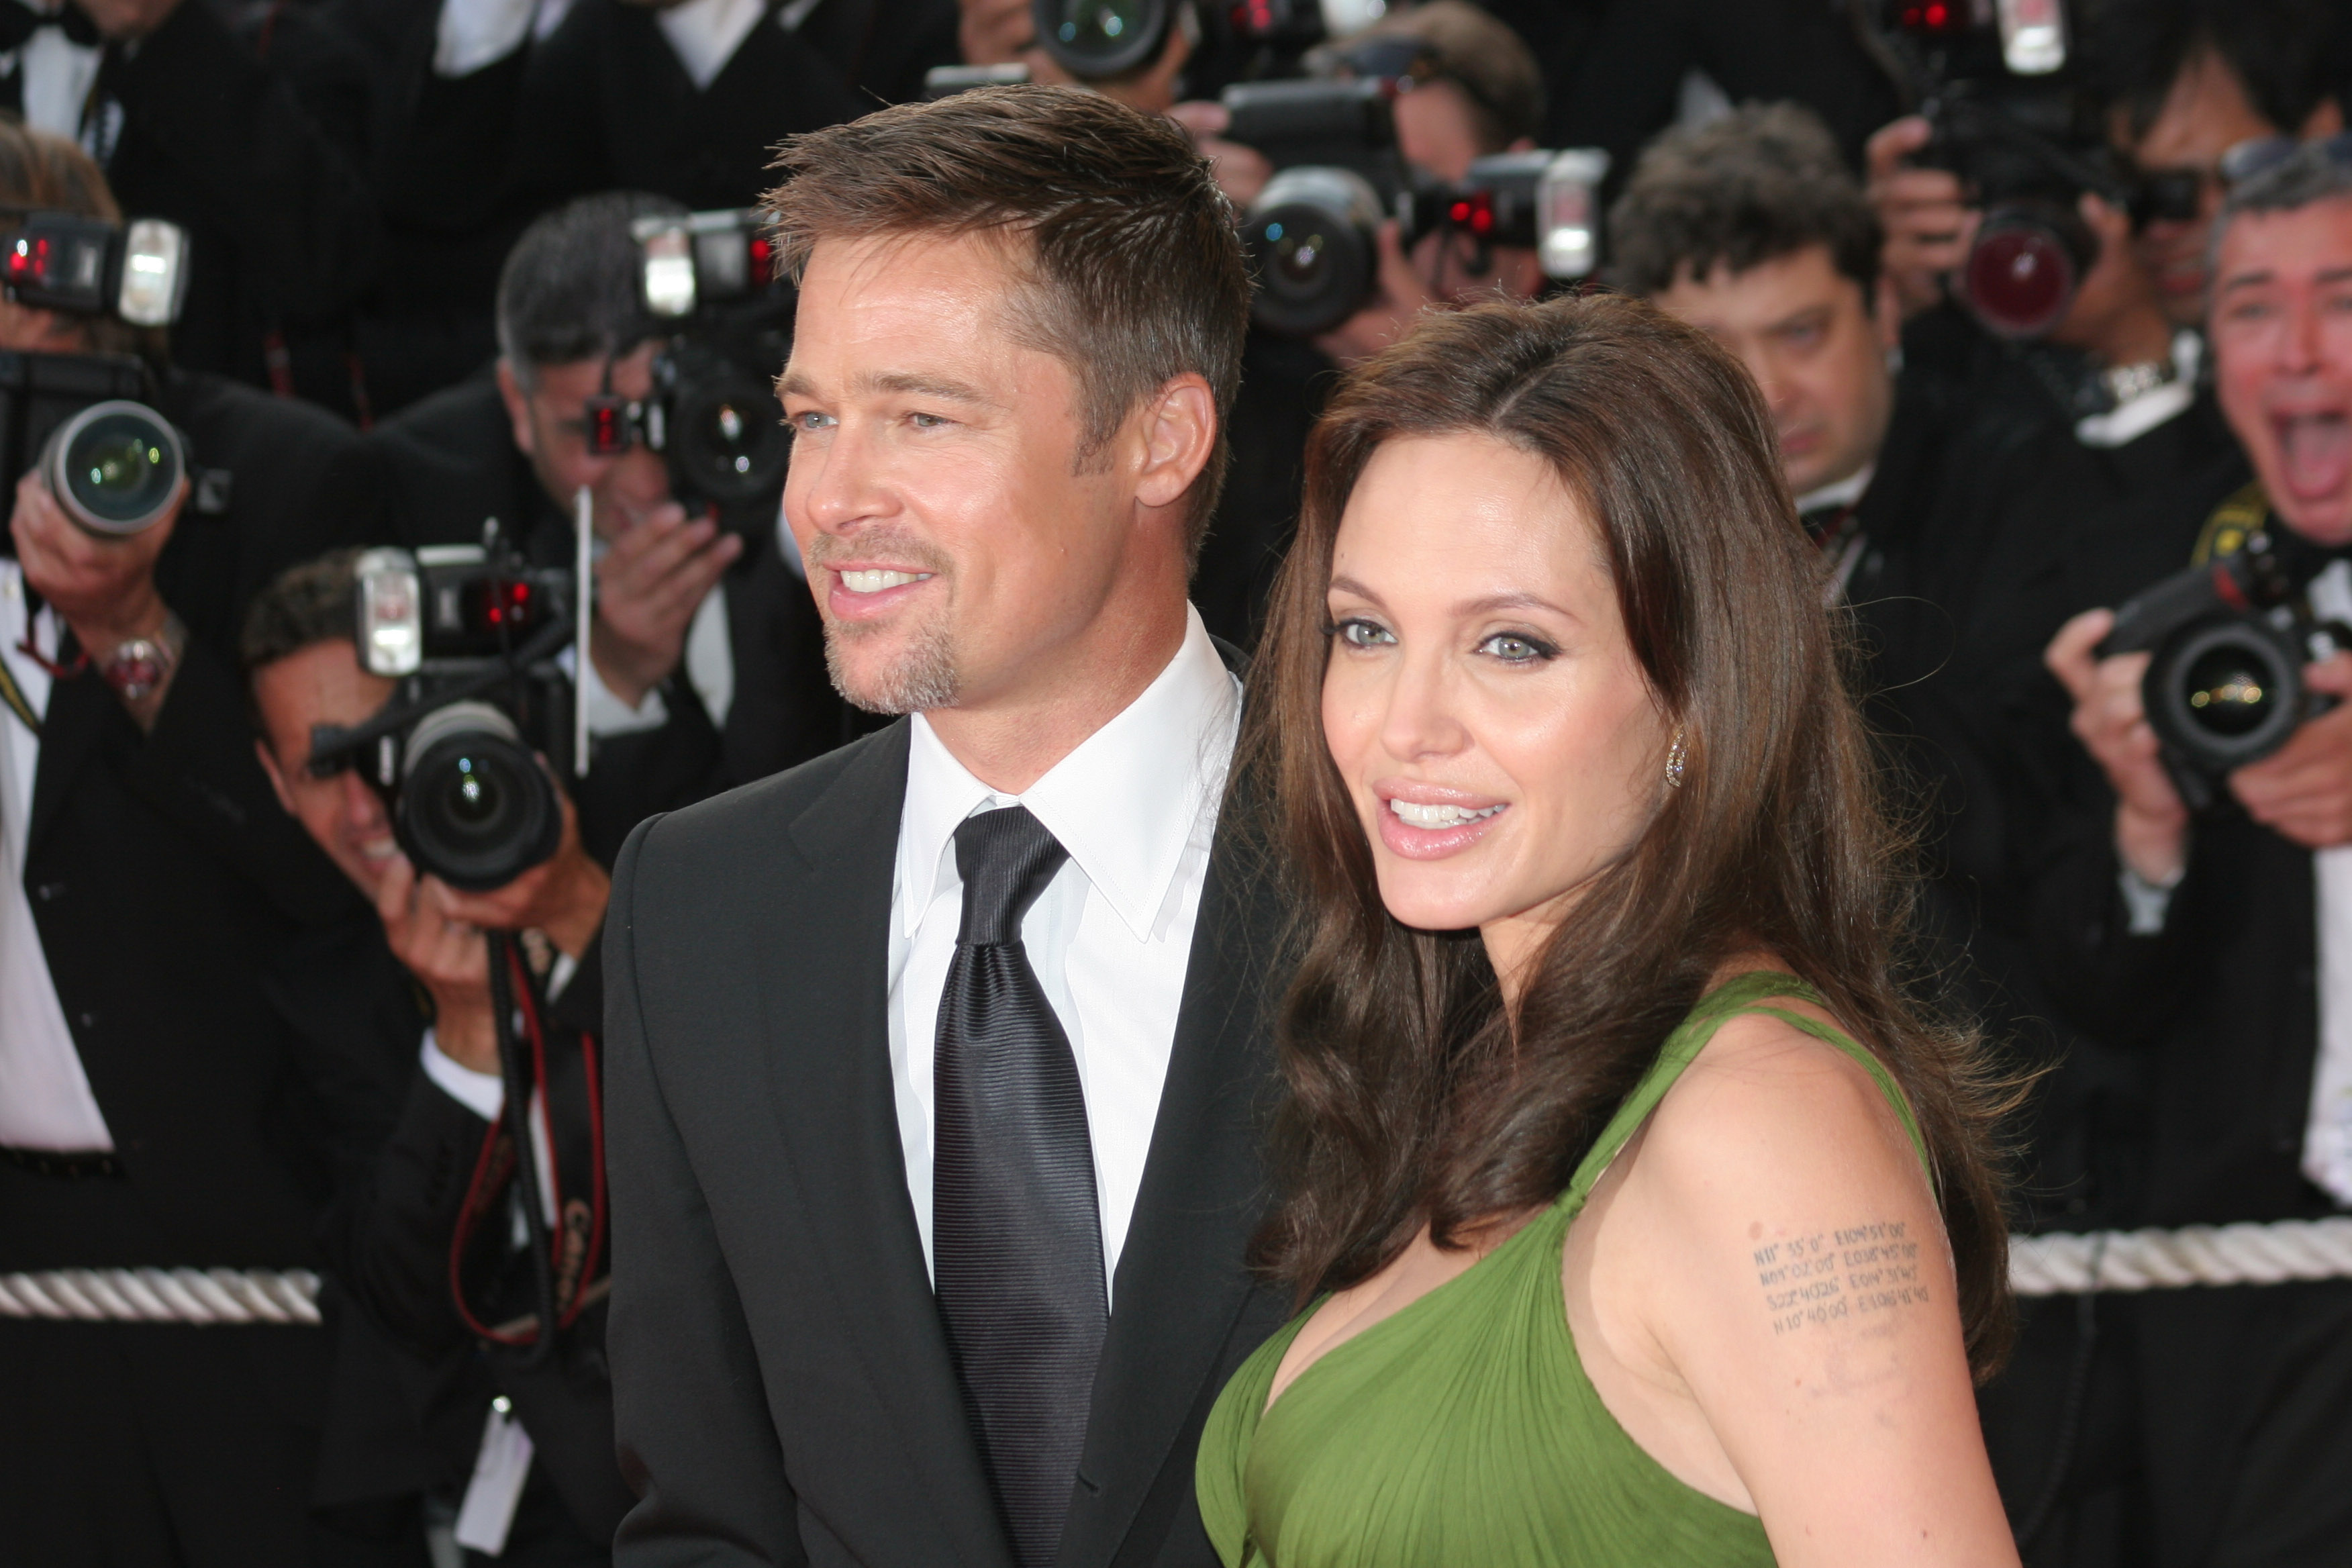 Angelina Jolie and Brad Pitt at the Cannes Premiere of Kung Fu Panda